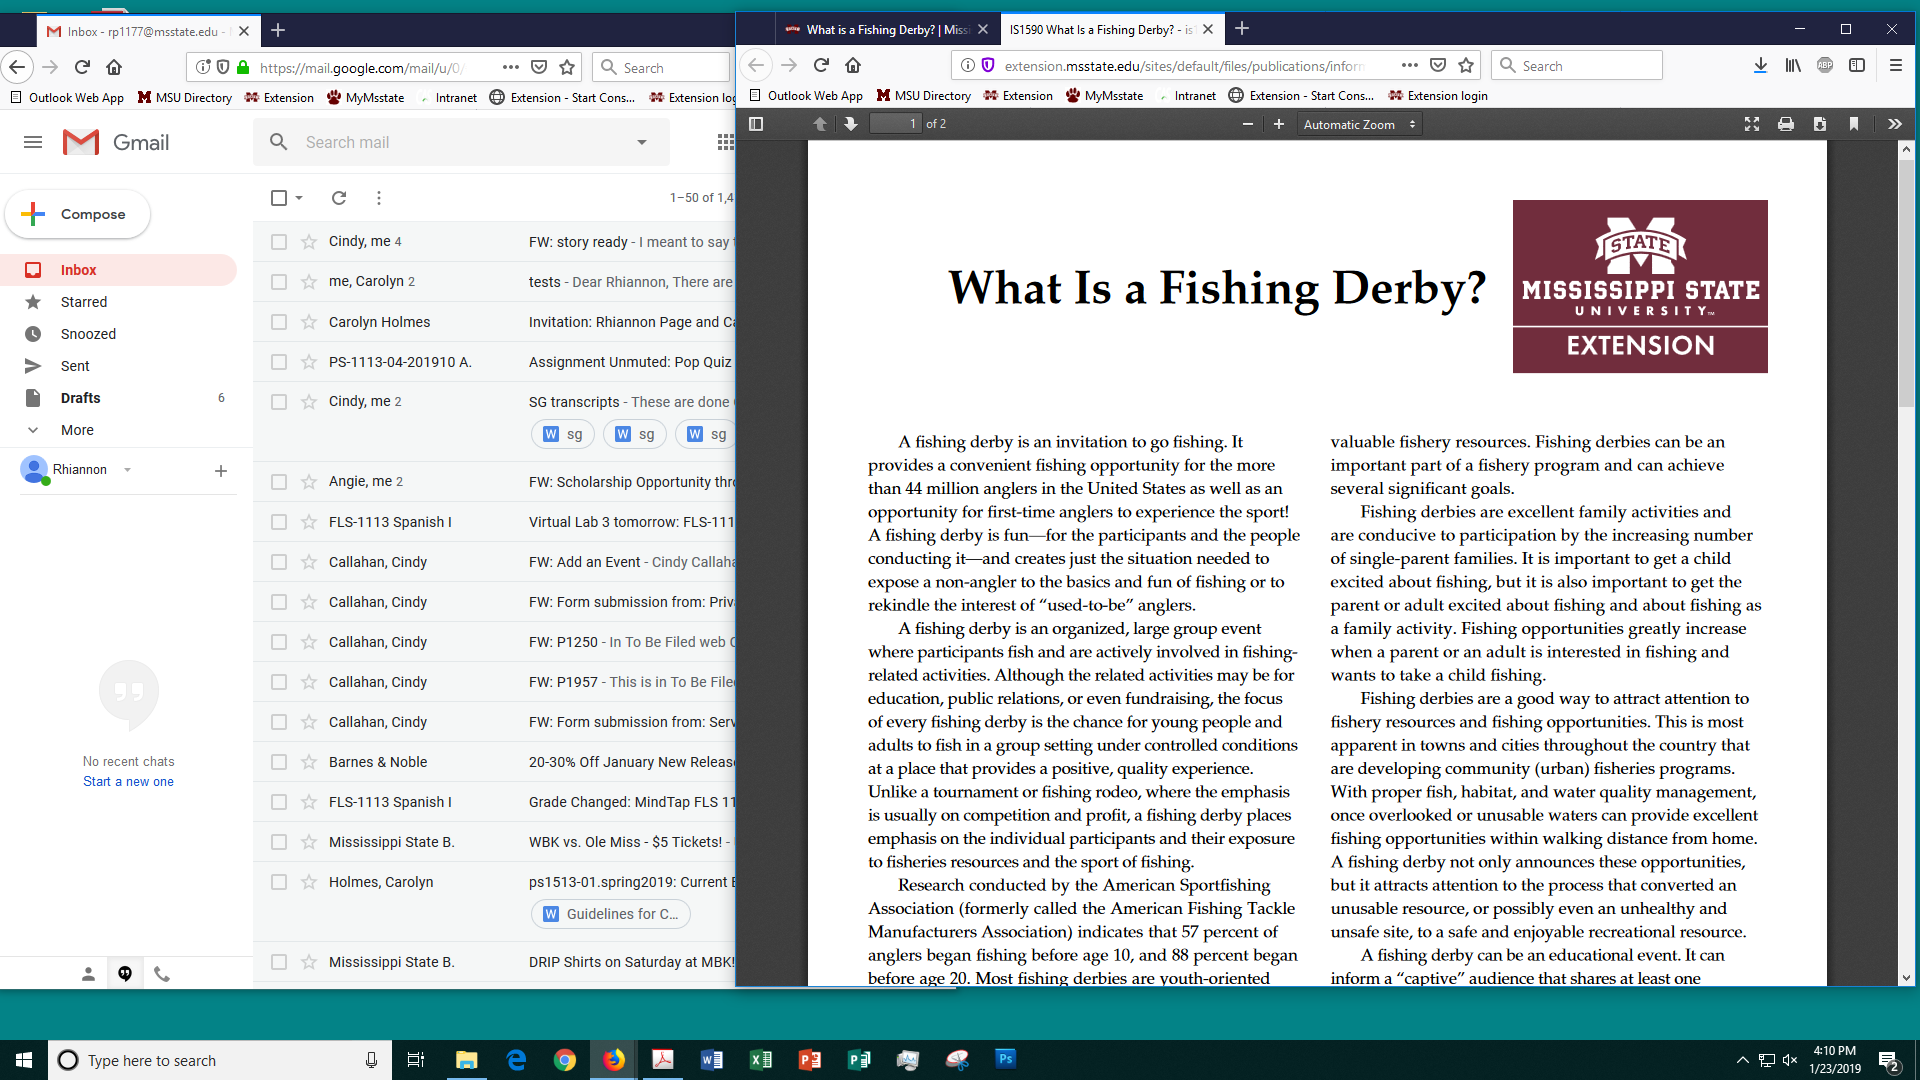 What is a Fishing Derby? | Mississippi State University Extension